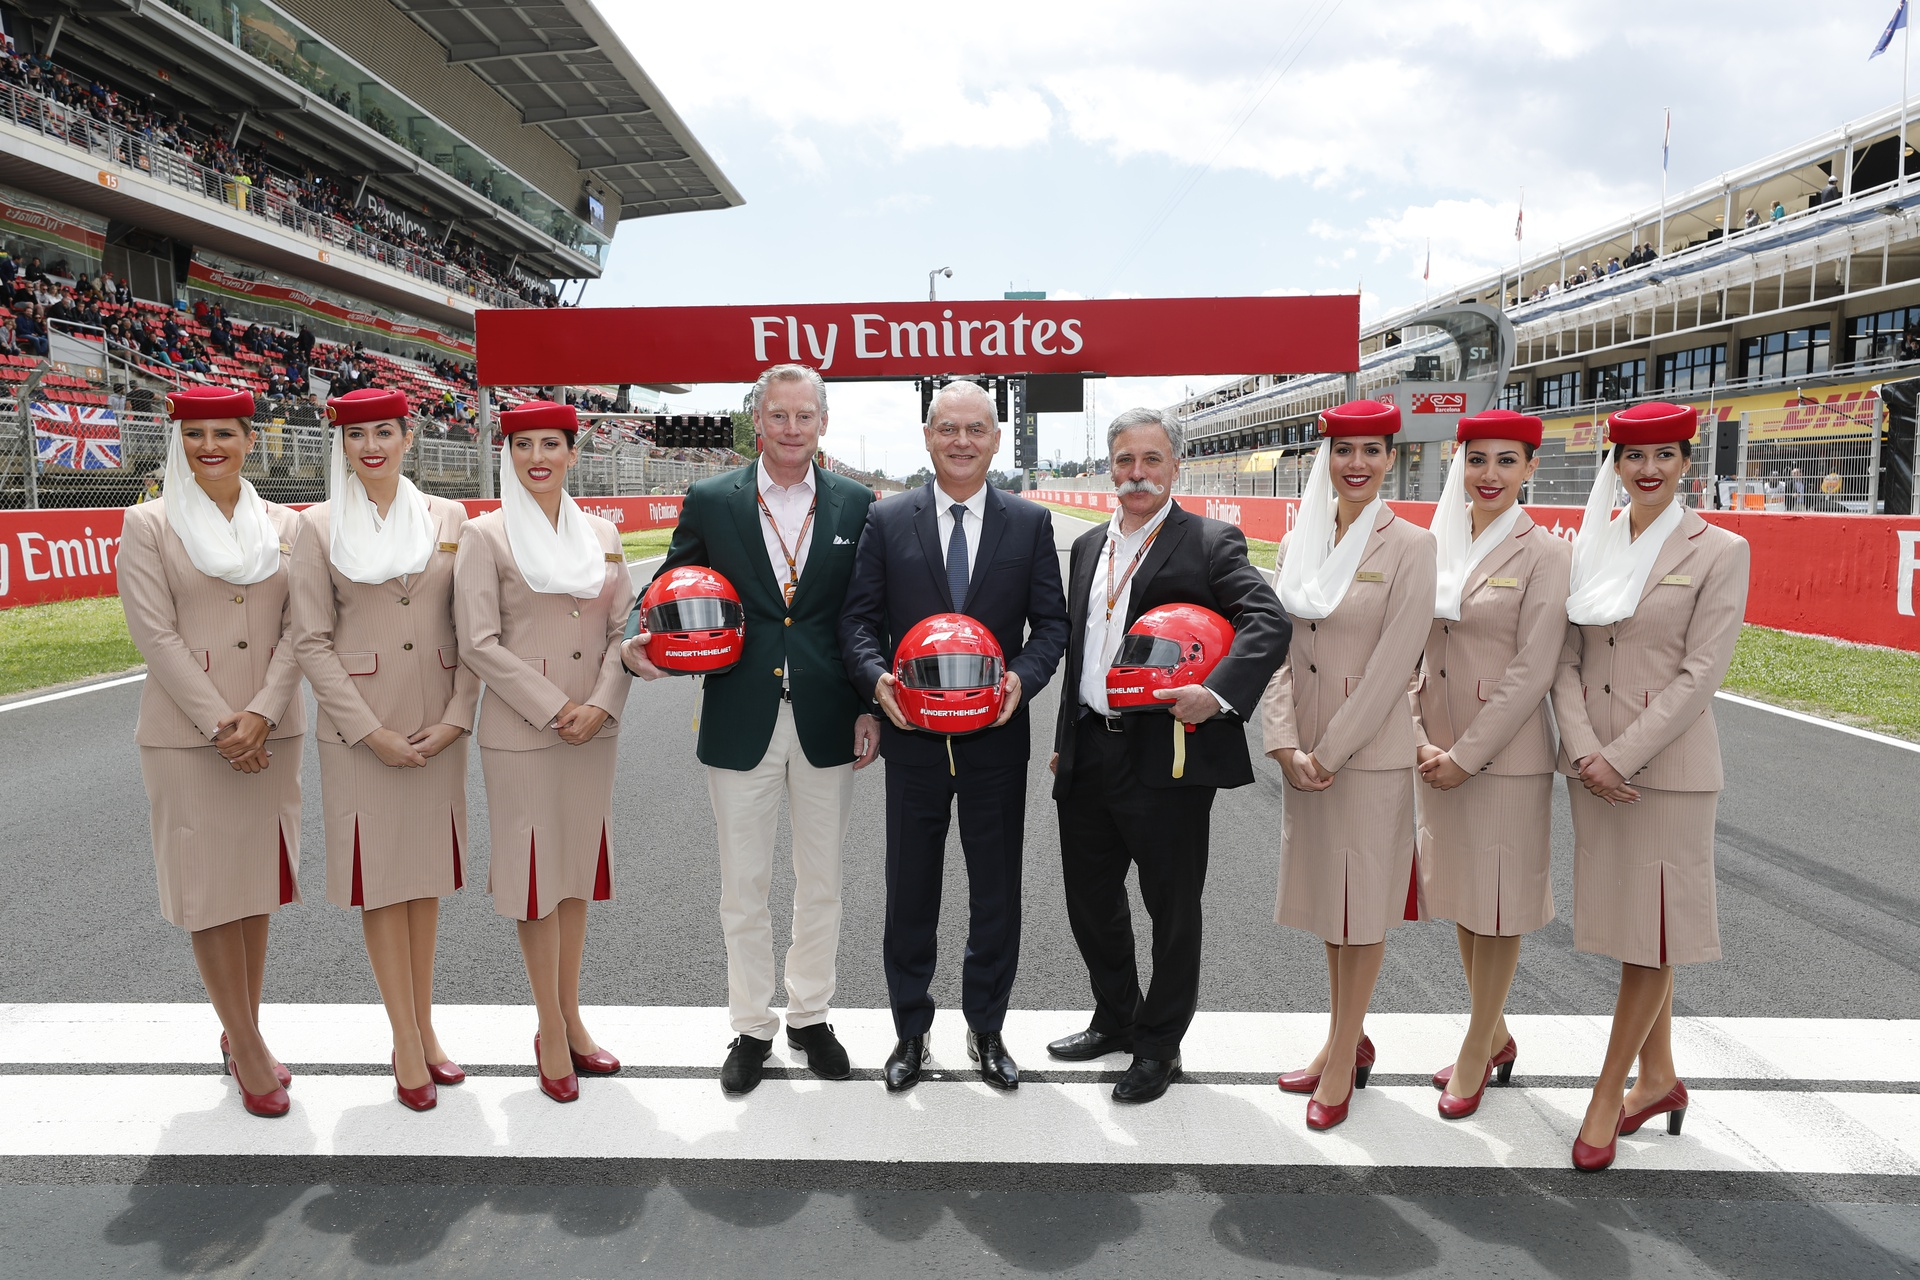 From left to right: Sean Bratches, Managing Director, Commercial Operations at Formula 1, Thierry Antinori, Emirates Executive Vice President and Chief Commercial Officer, and Chase Carey, Chief Executive Officer of the Formula One Group, flanked by Emirates Cabin Crew, before the start of today's Spanish Grand Prix, of which Emirates is the Title Sponsor. Emirates and Formula 1® today announced a five year renewal of their Global Partnership.